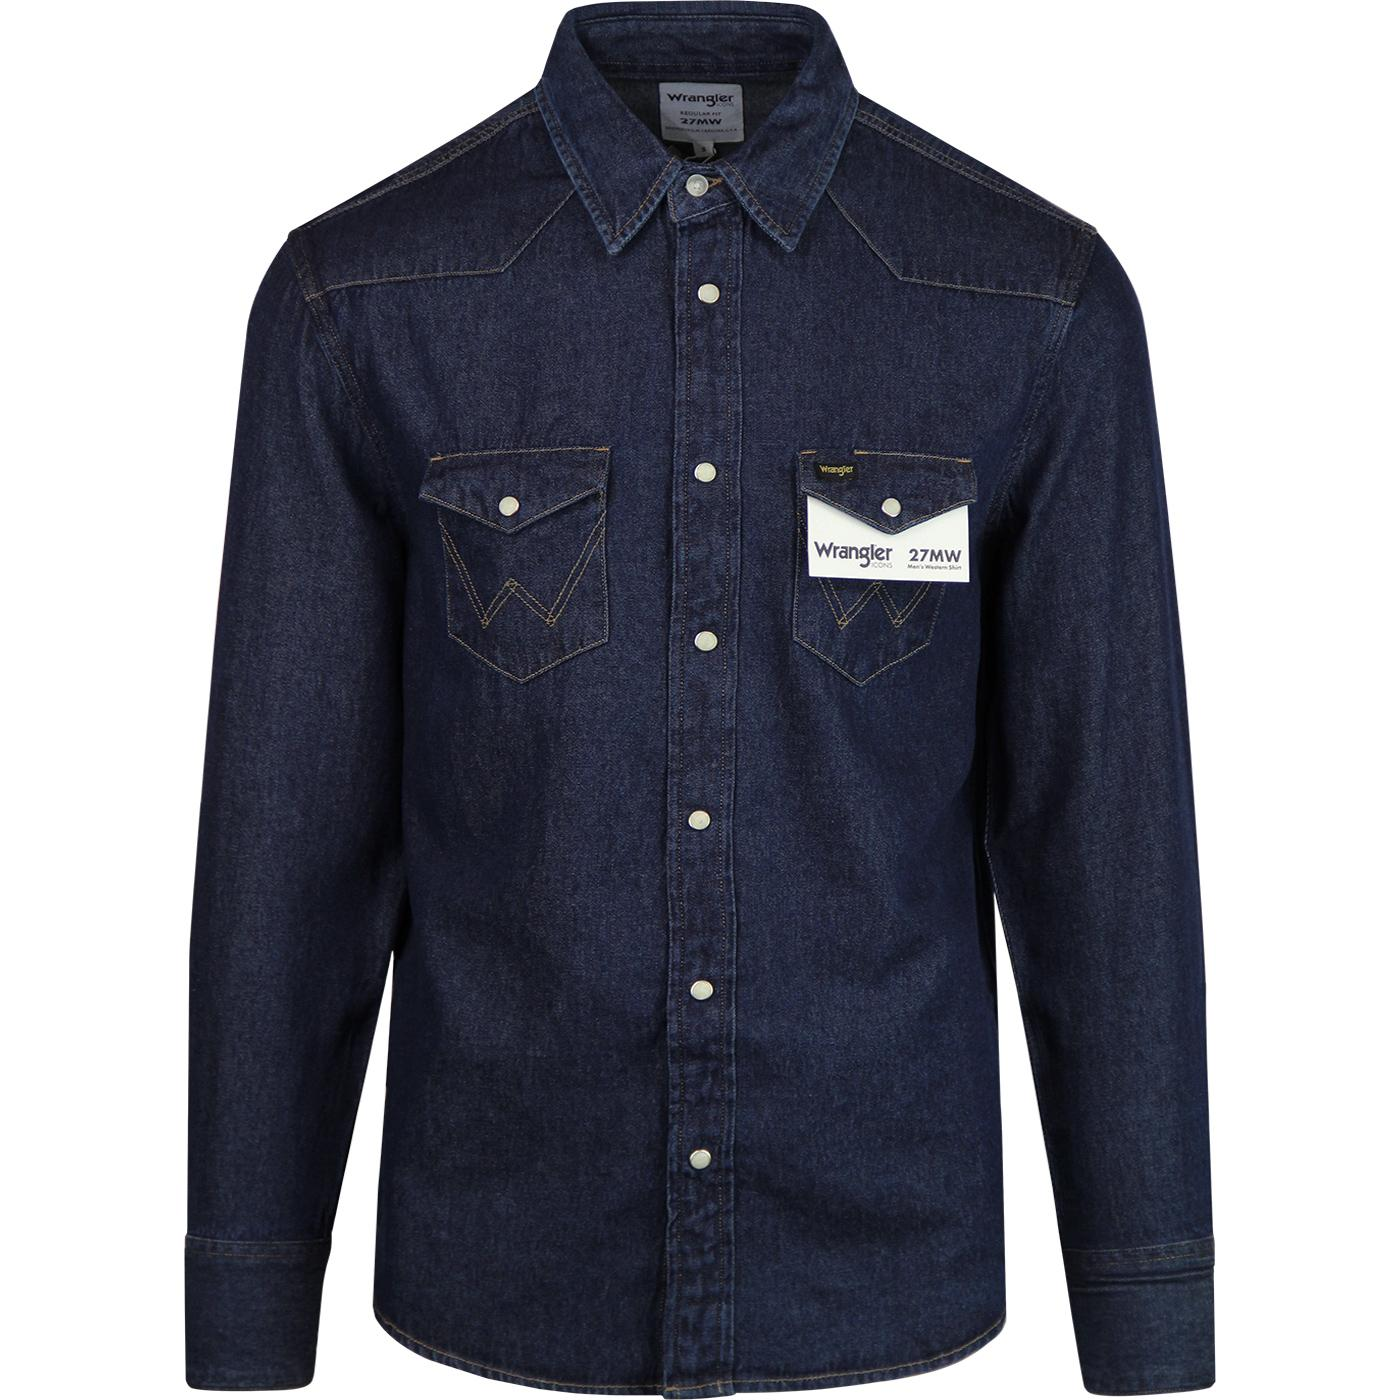 27MW WRANGLER Retro Mod Denim Men's Western Shirt